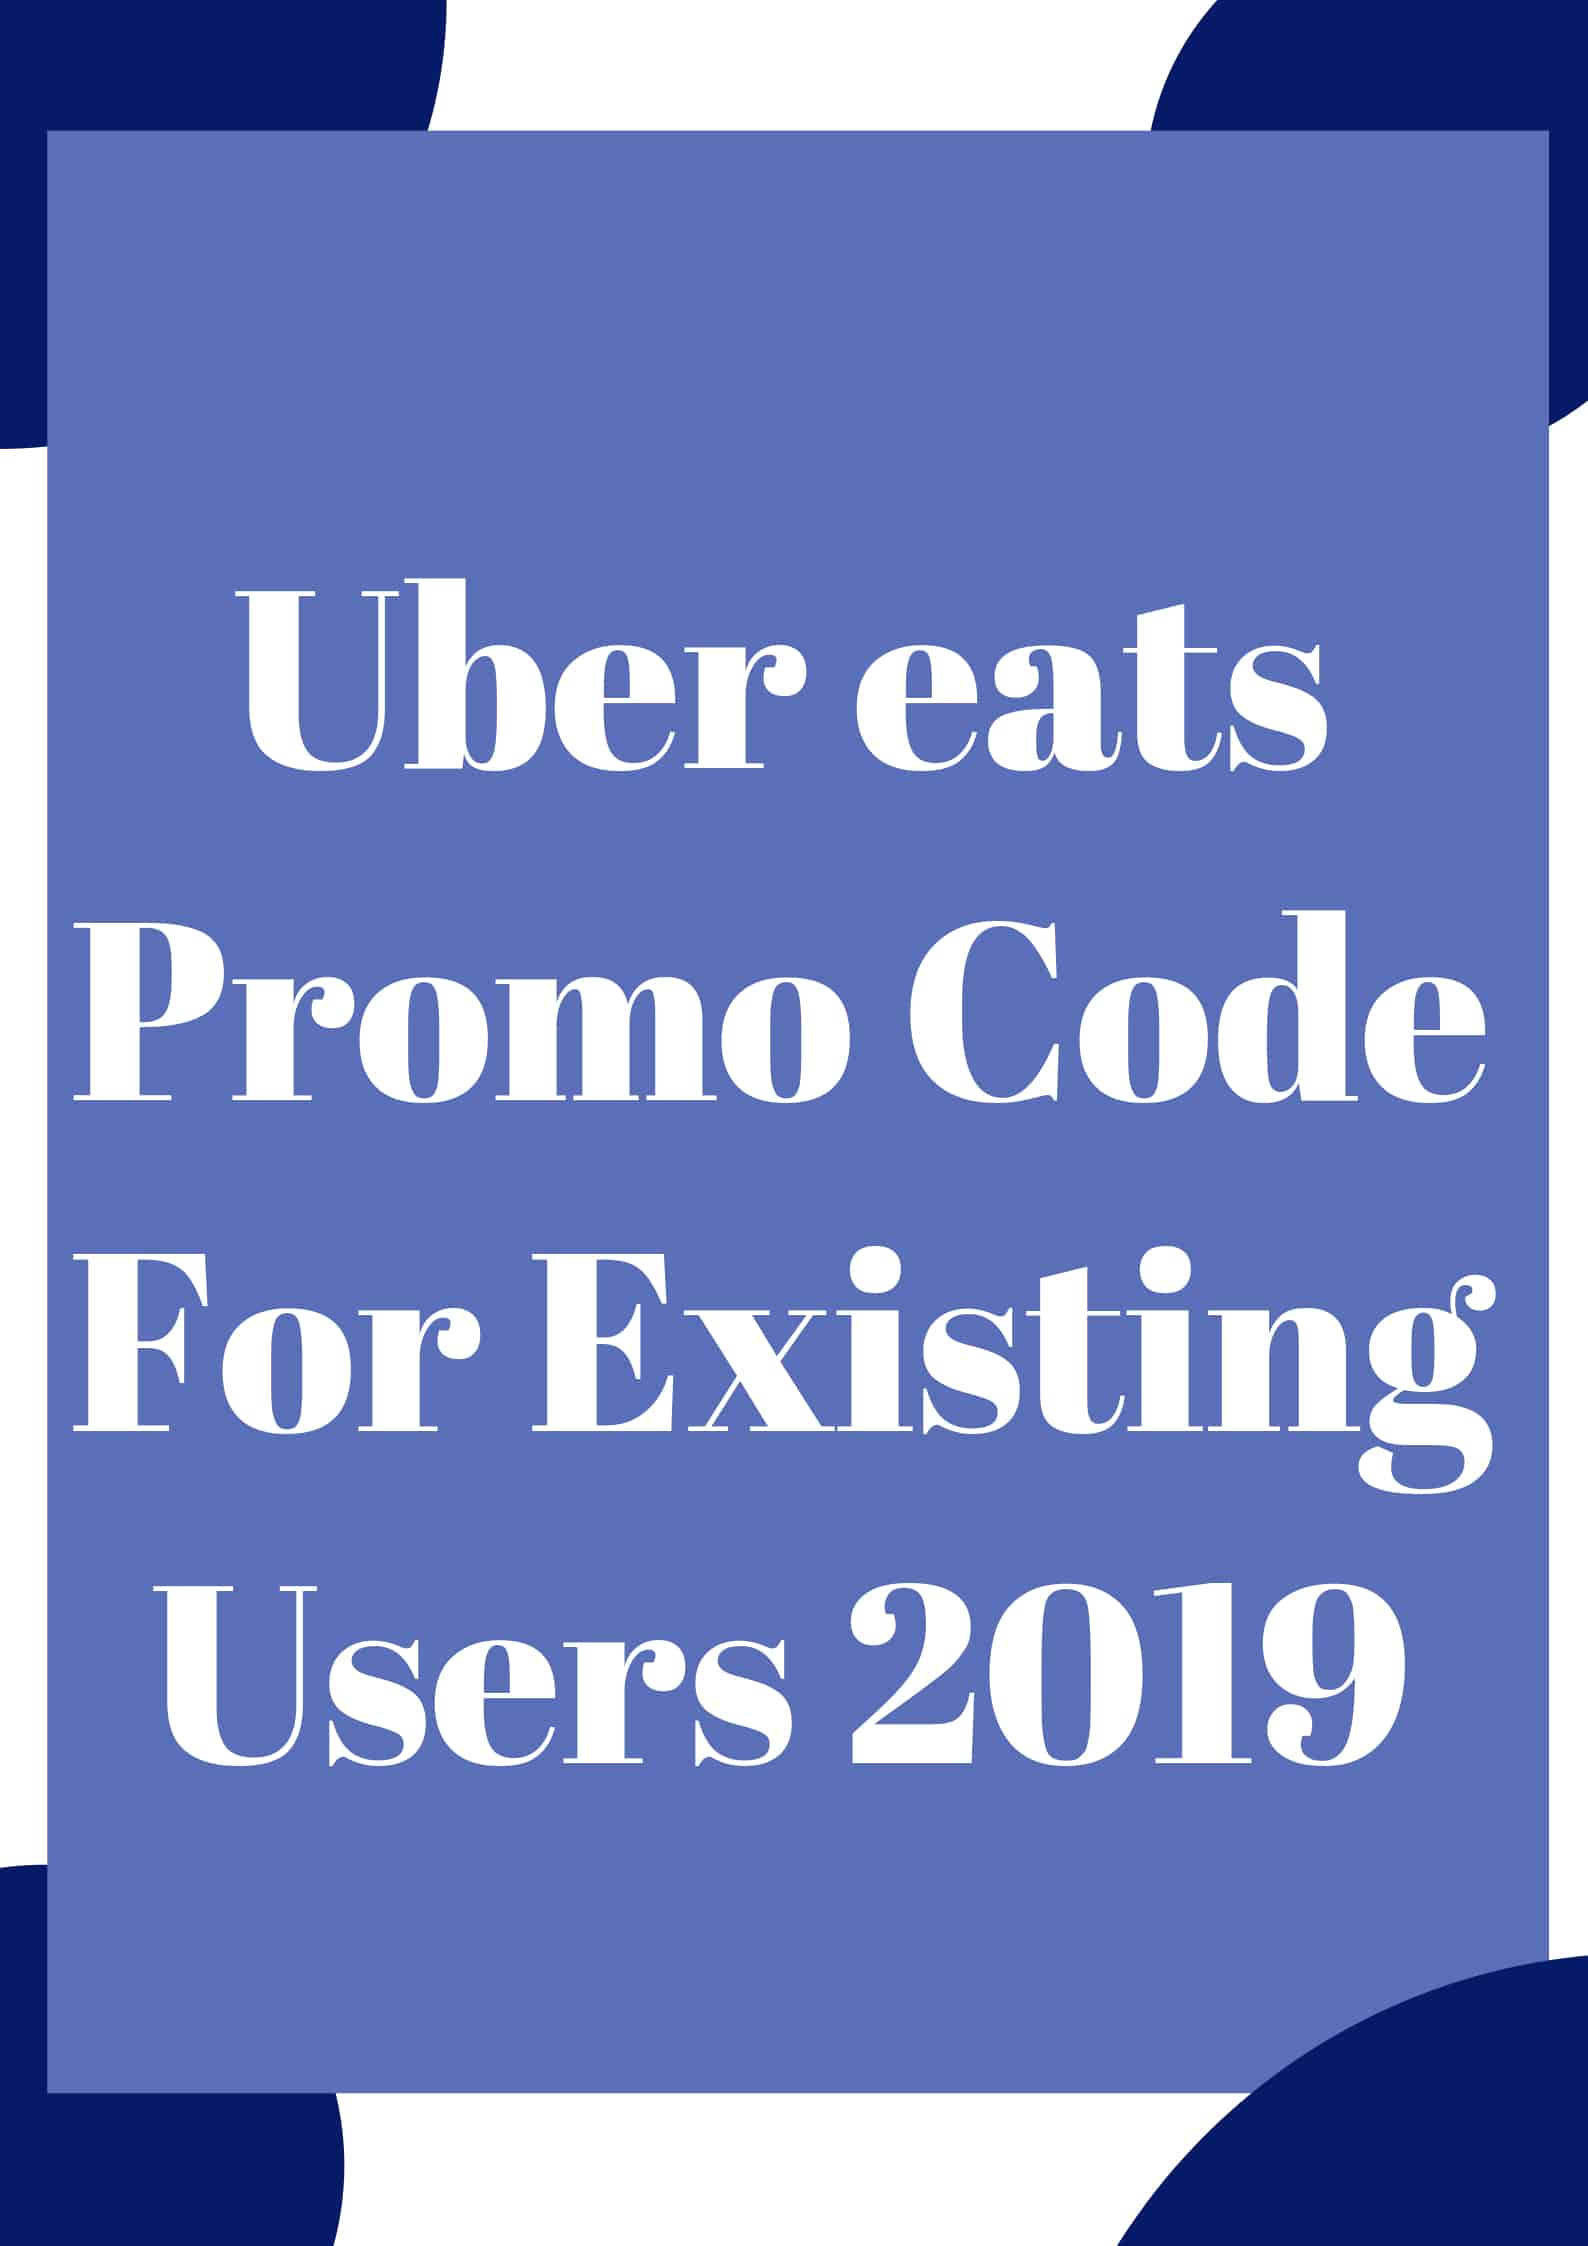 5+ Uber Eats Promo Code Existing Users + Free Delivery - Aug 2019